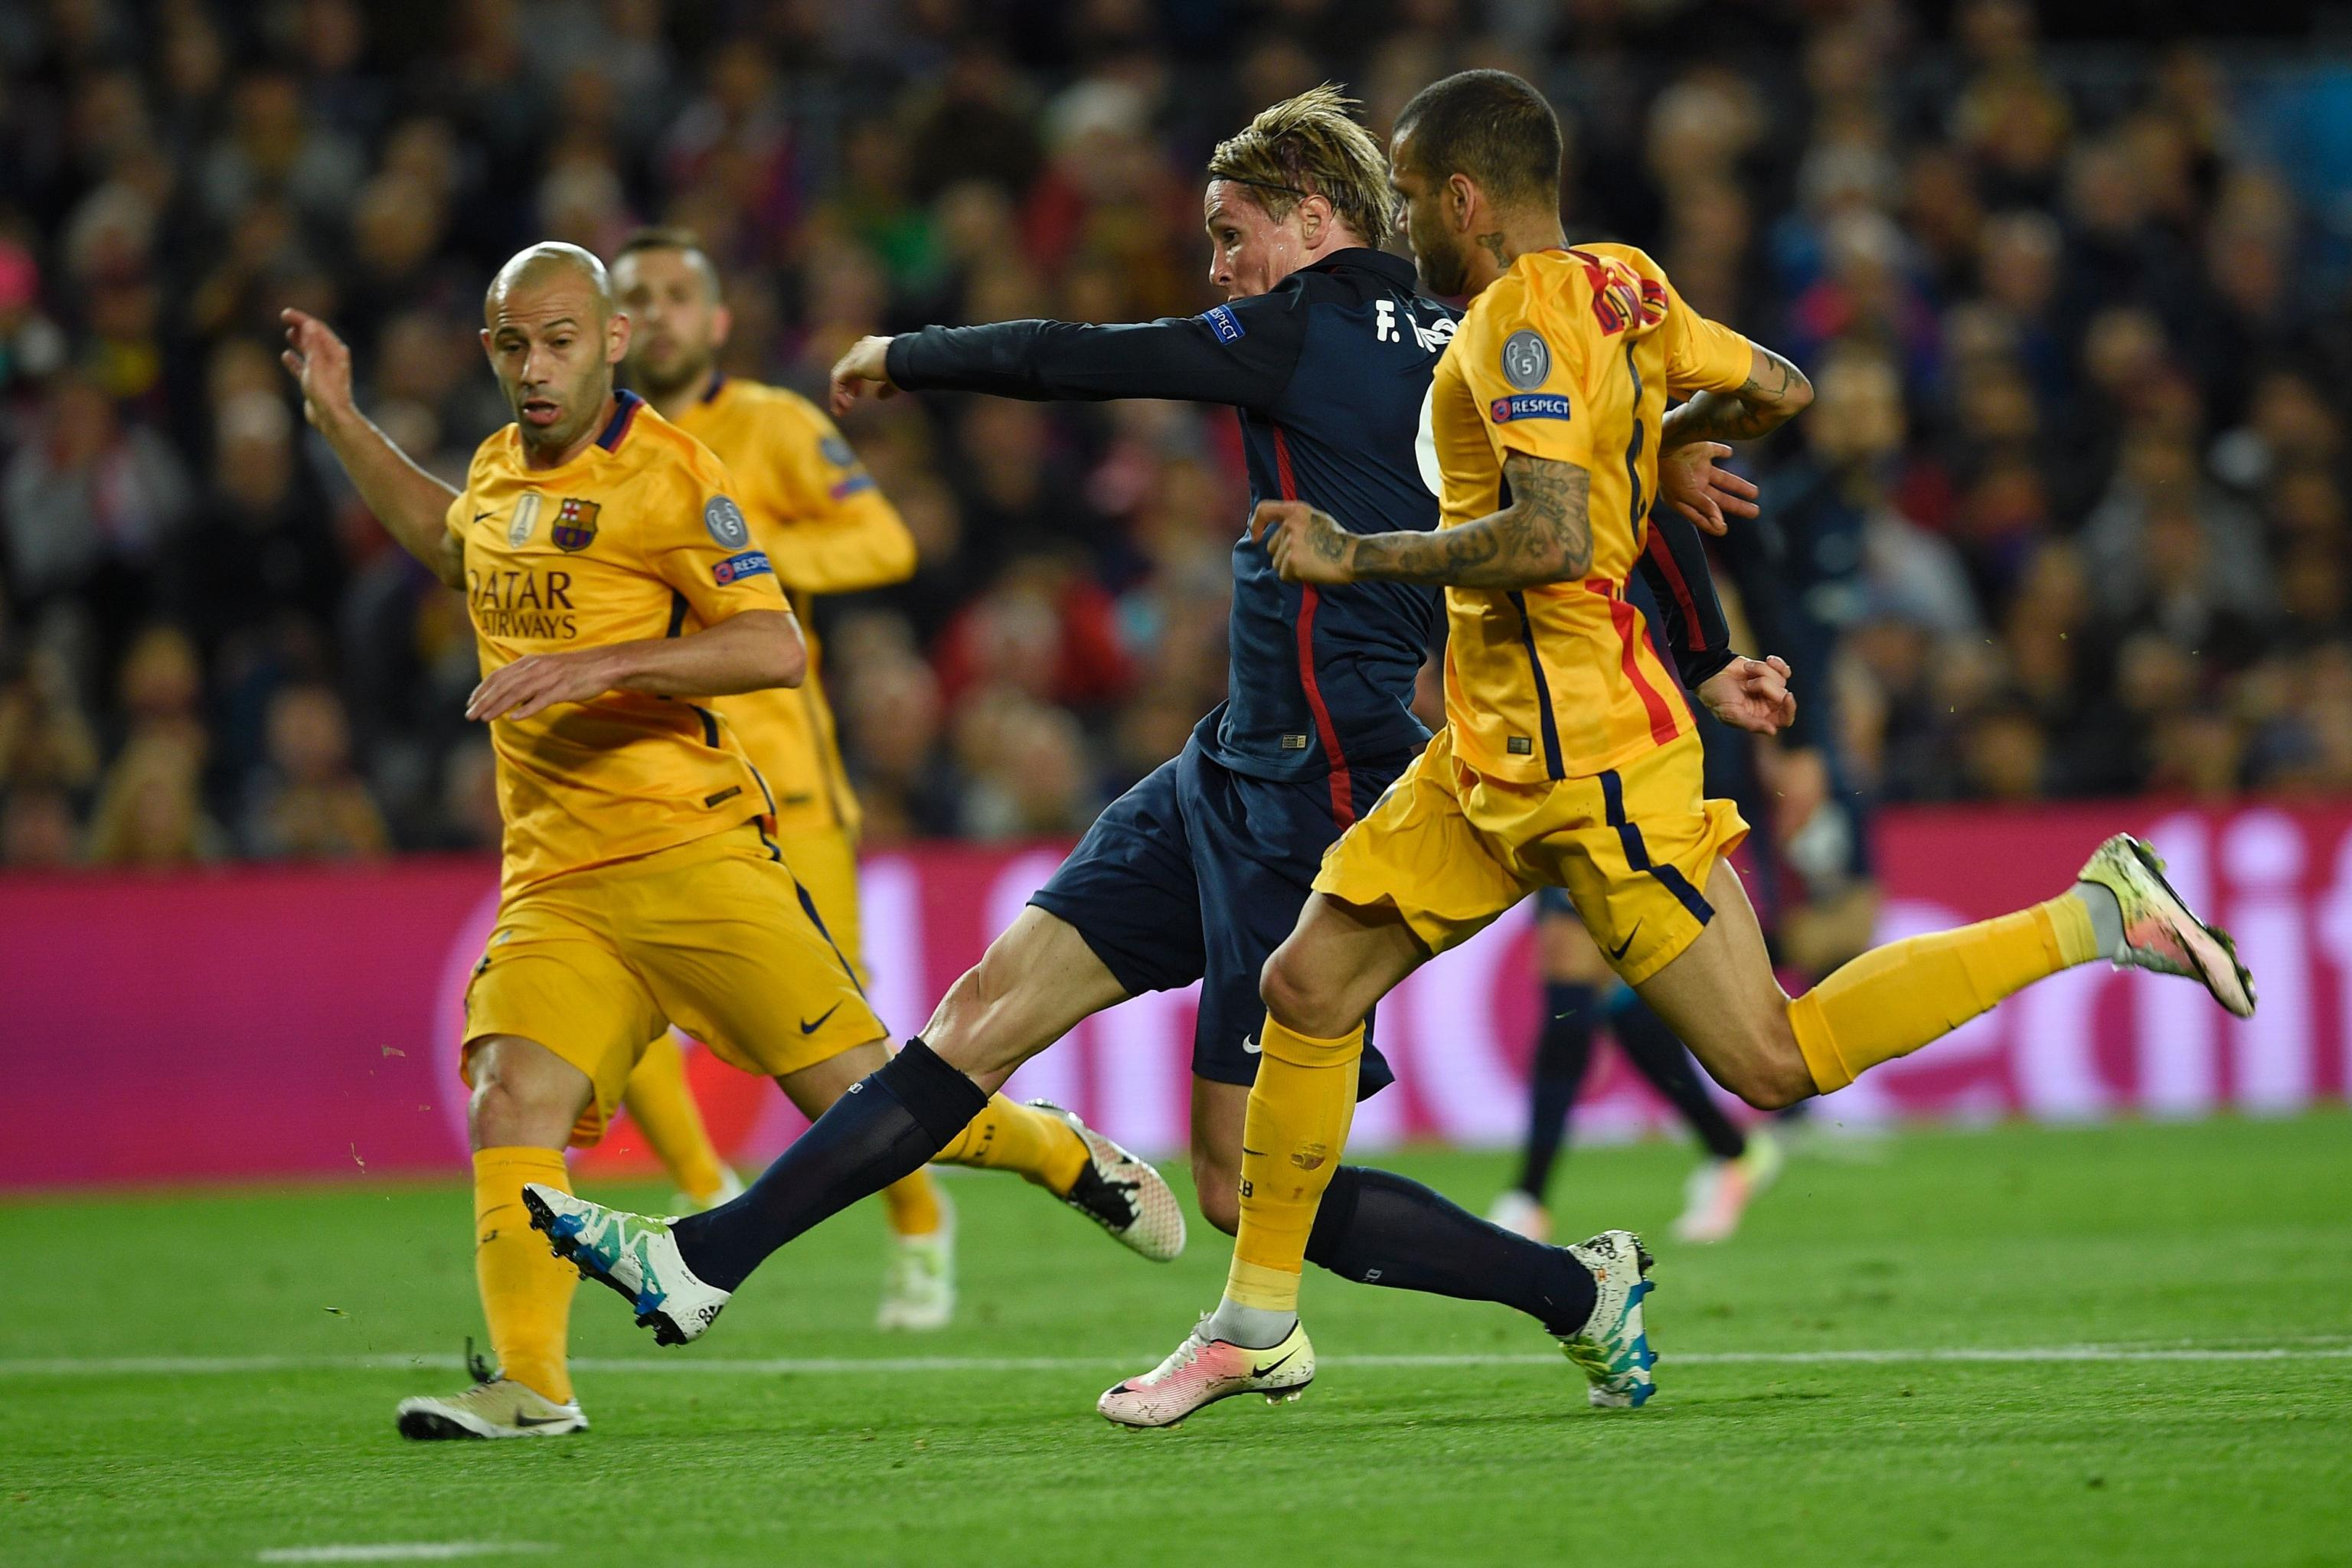 Barcelona Vs Atletico Madrid Goals And Highlights From 2016 Champions League Bleacher Report Latest News Videos And Highlights